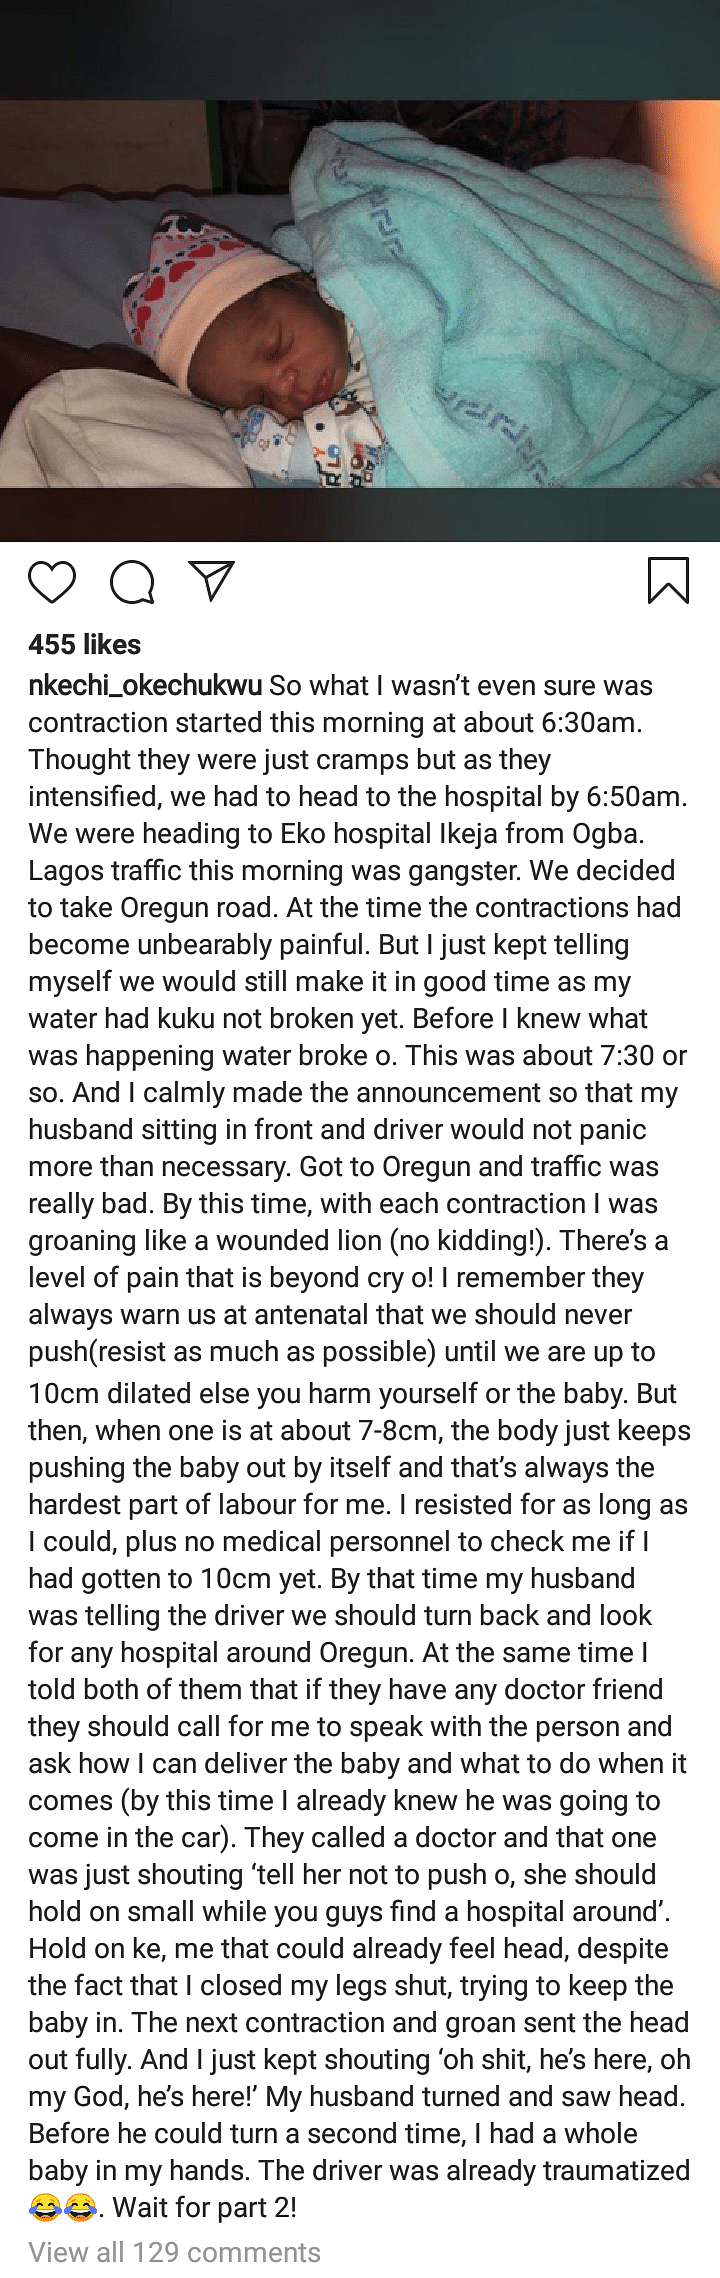 Lady Who Gave Birth In Lagos Traffic On Monday Narrates Her Story